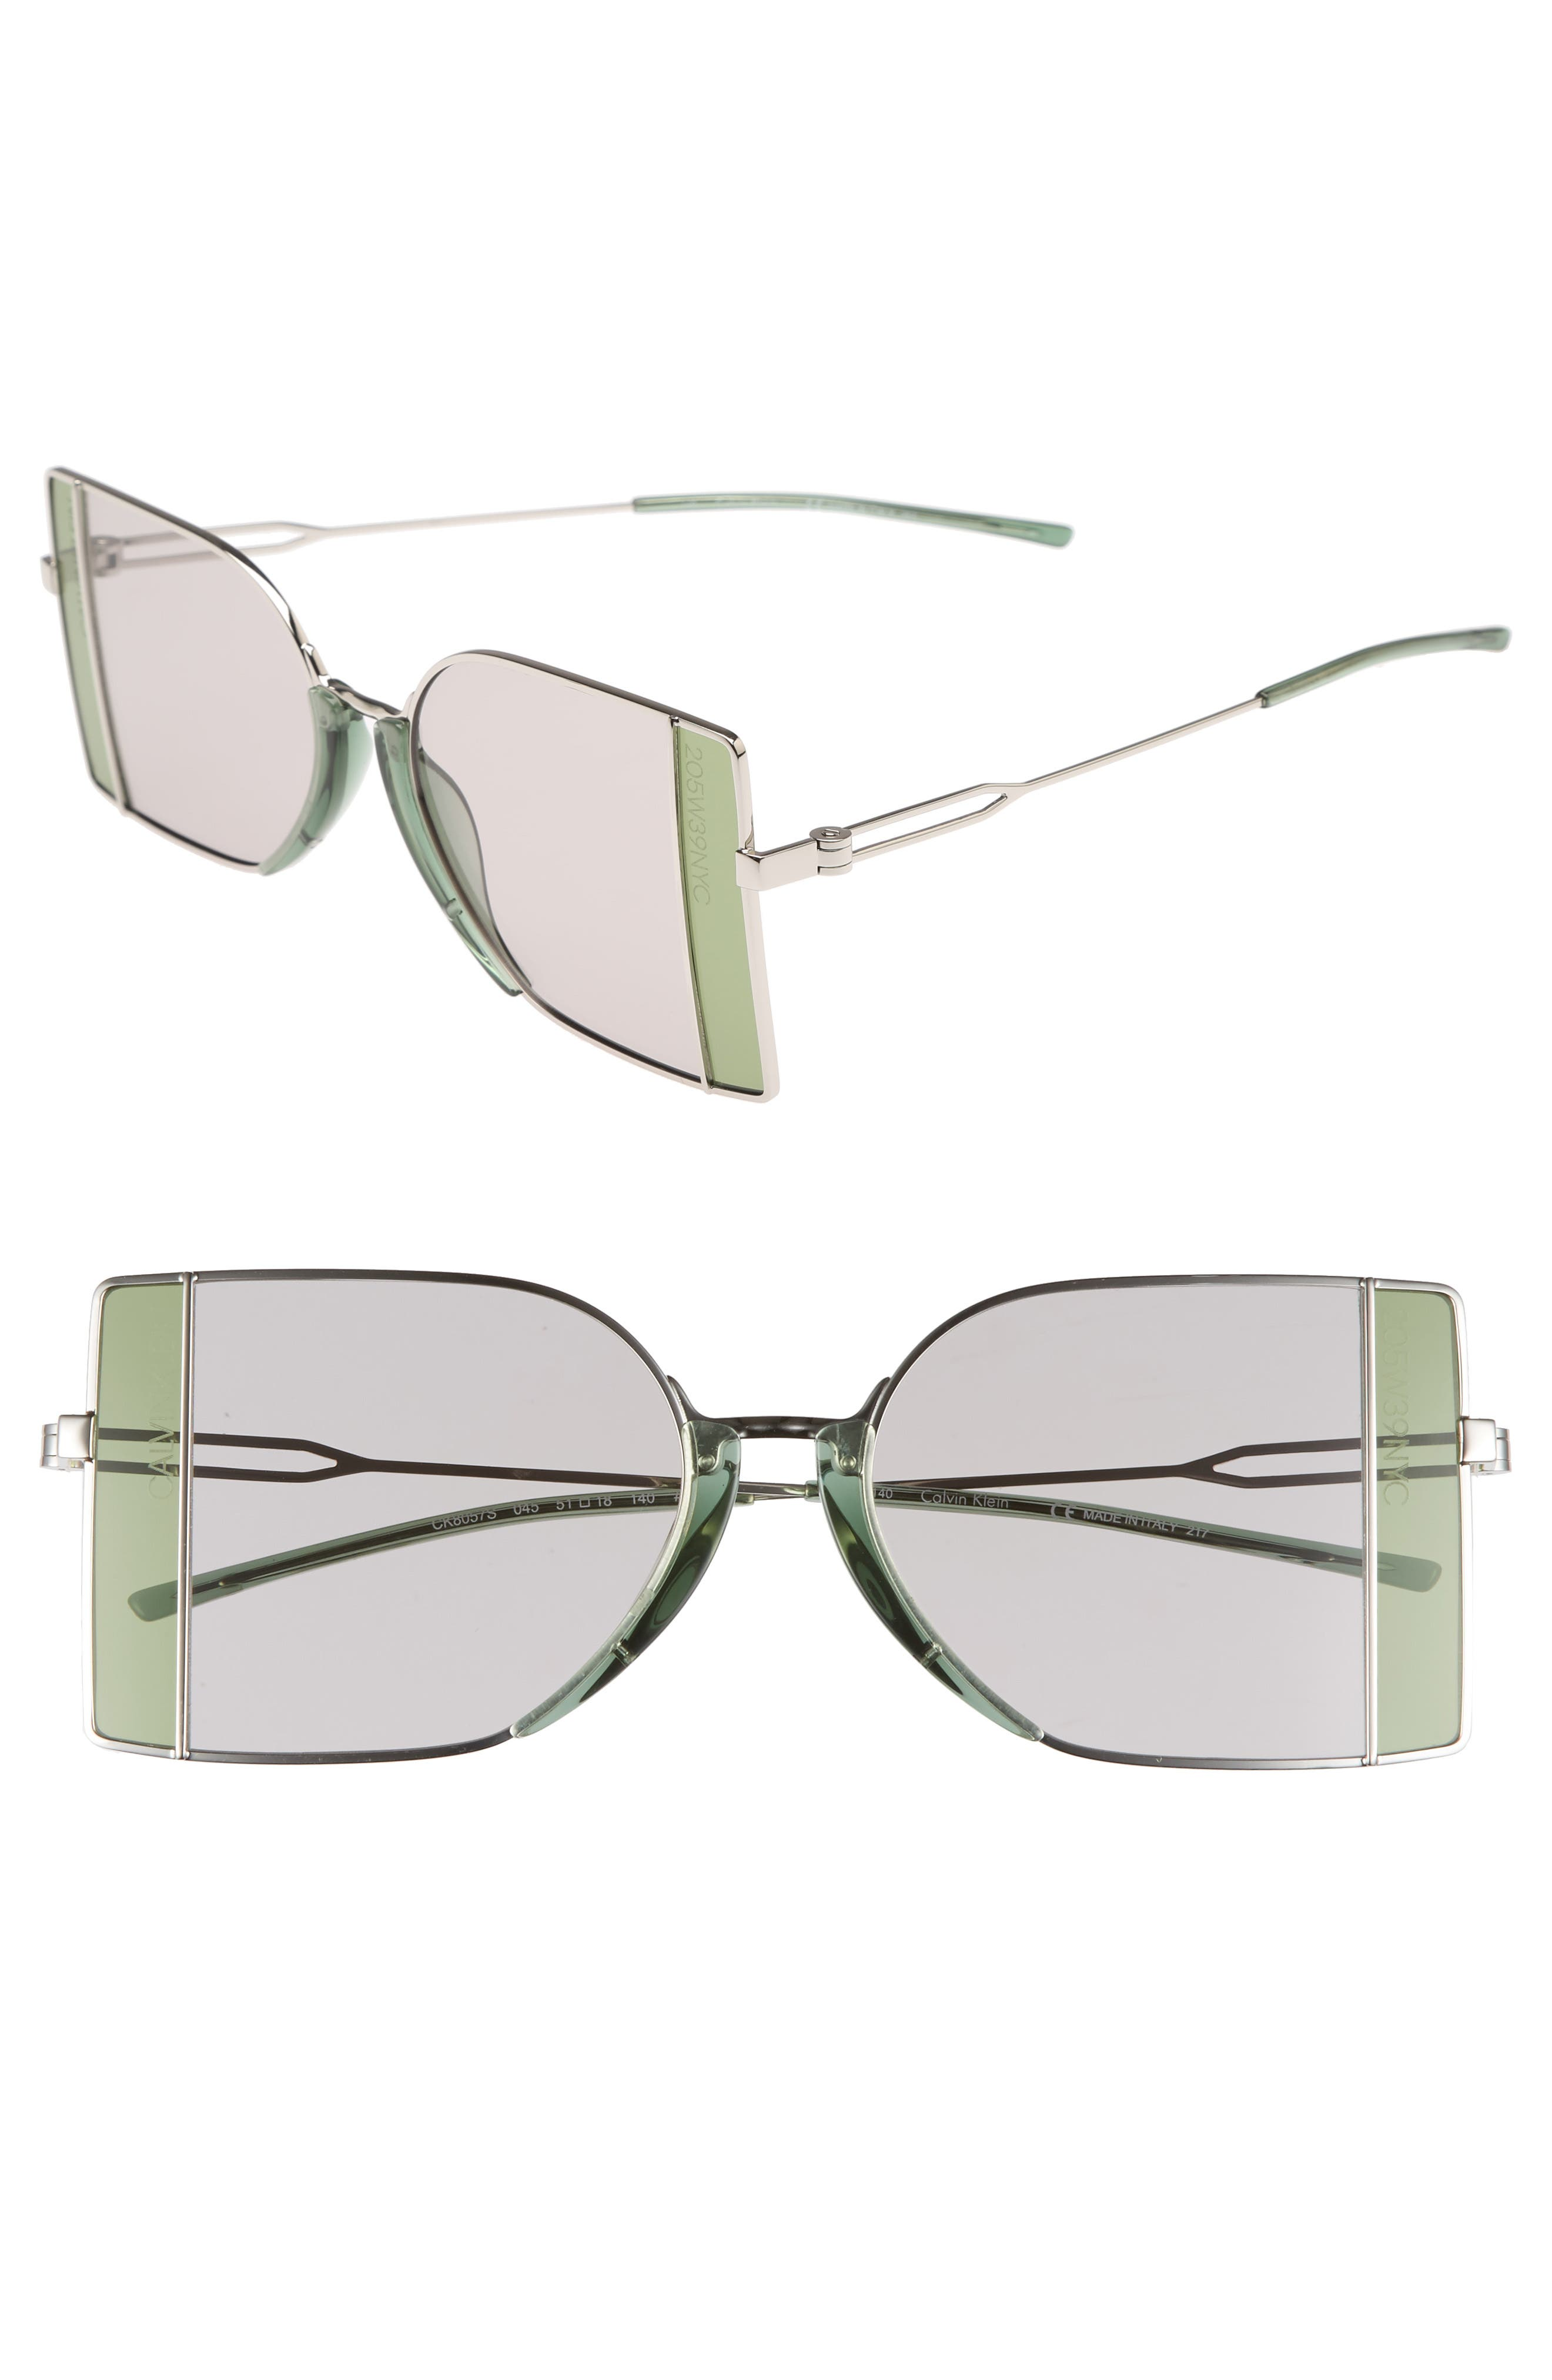 51mm Butterfly Sunglasses,                         Main,                         color, Silver